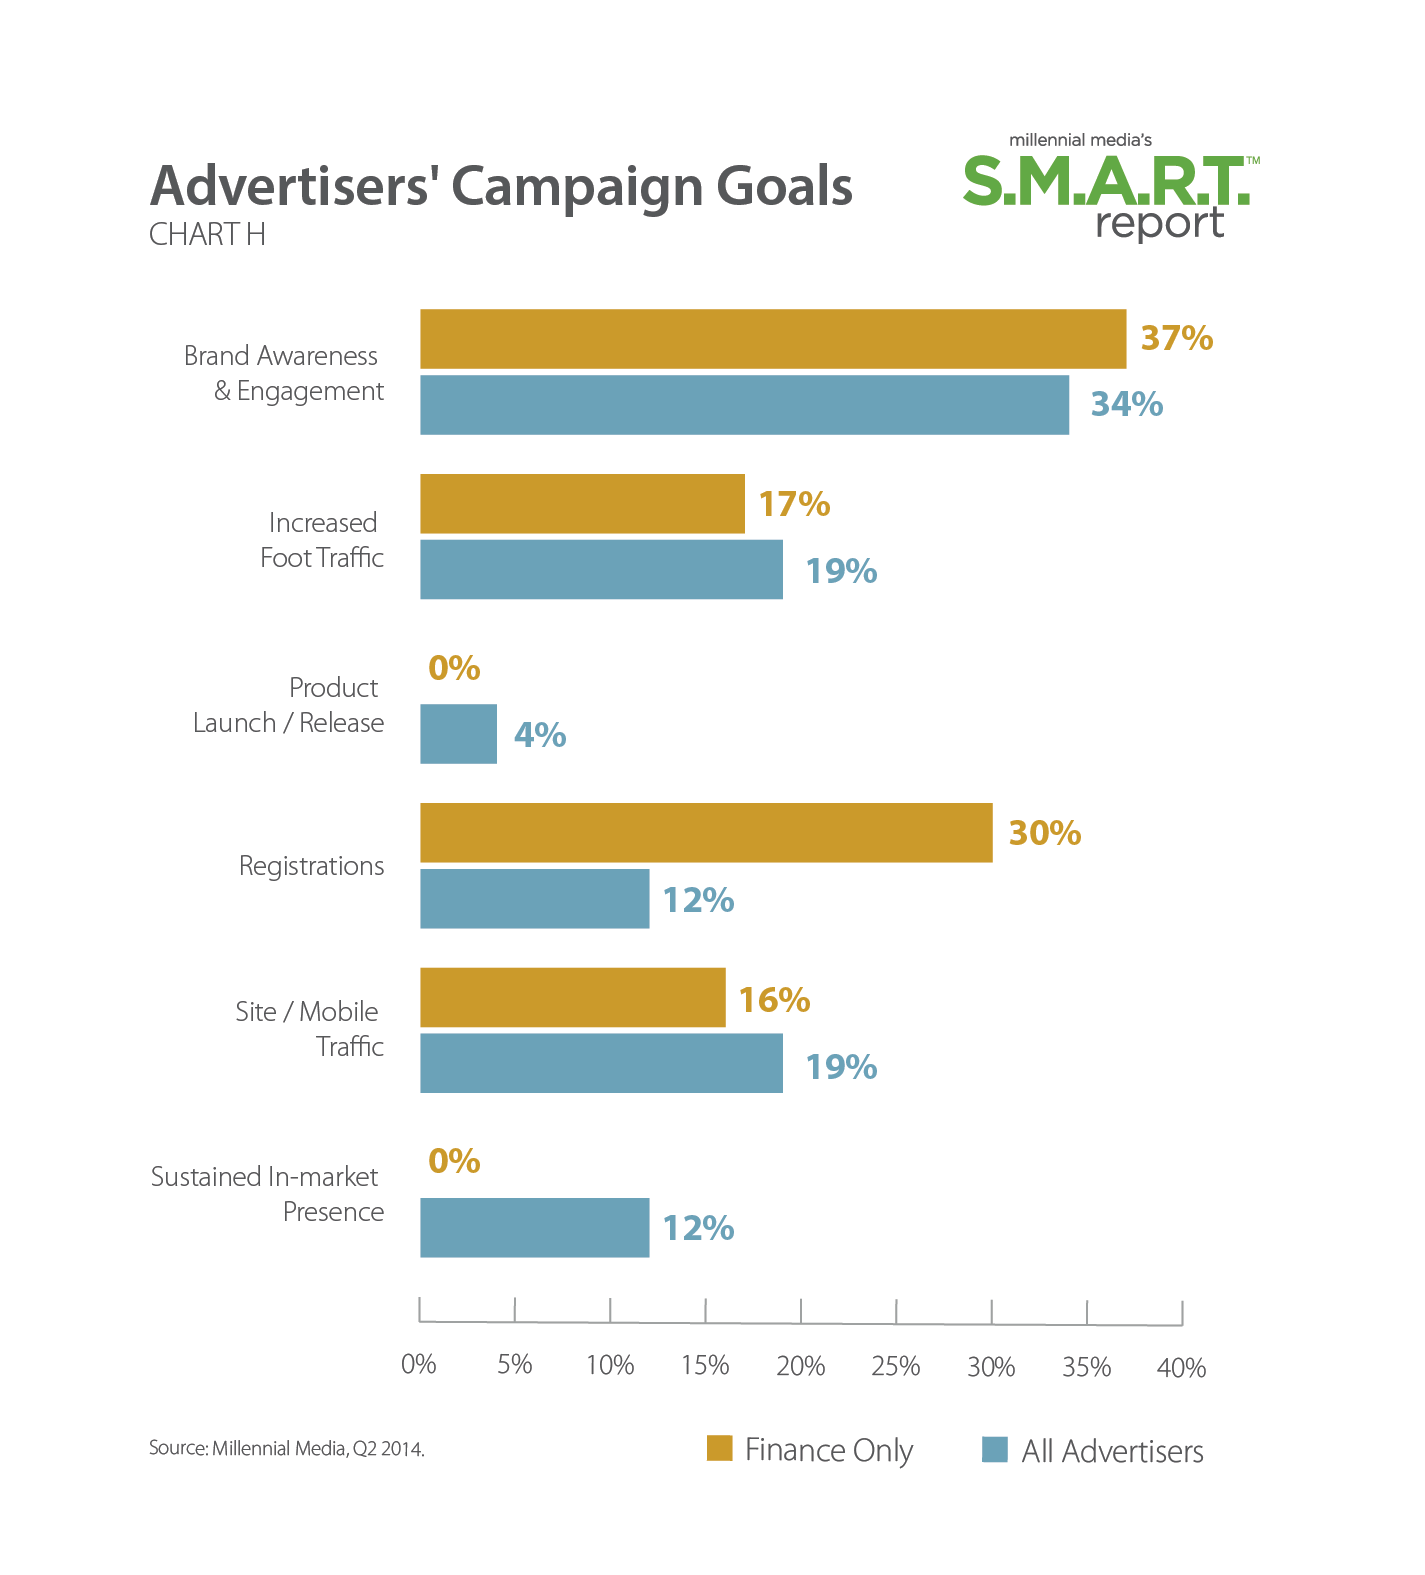 Top 3 advertisers goals  post mobile ad campaigns